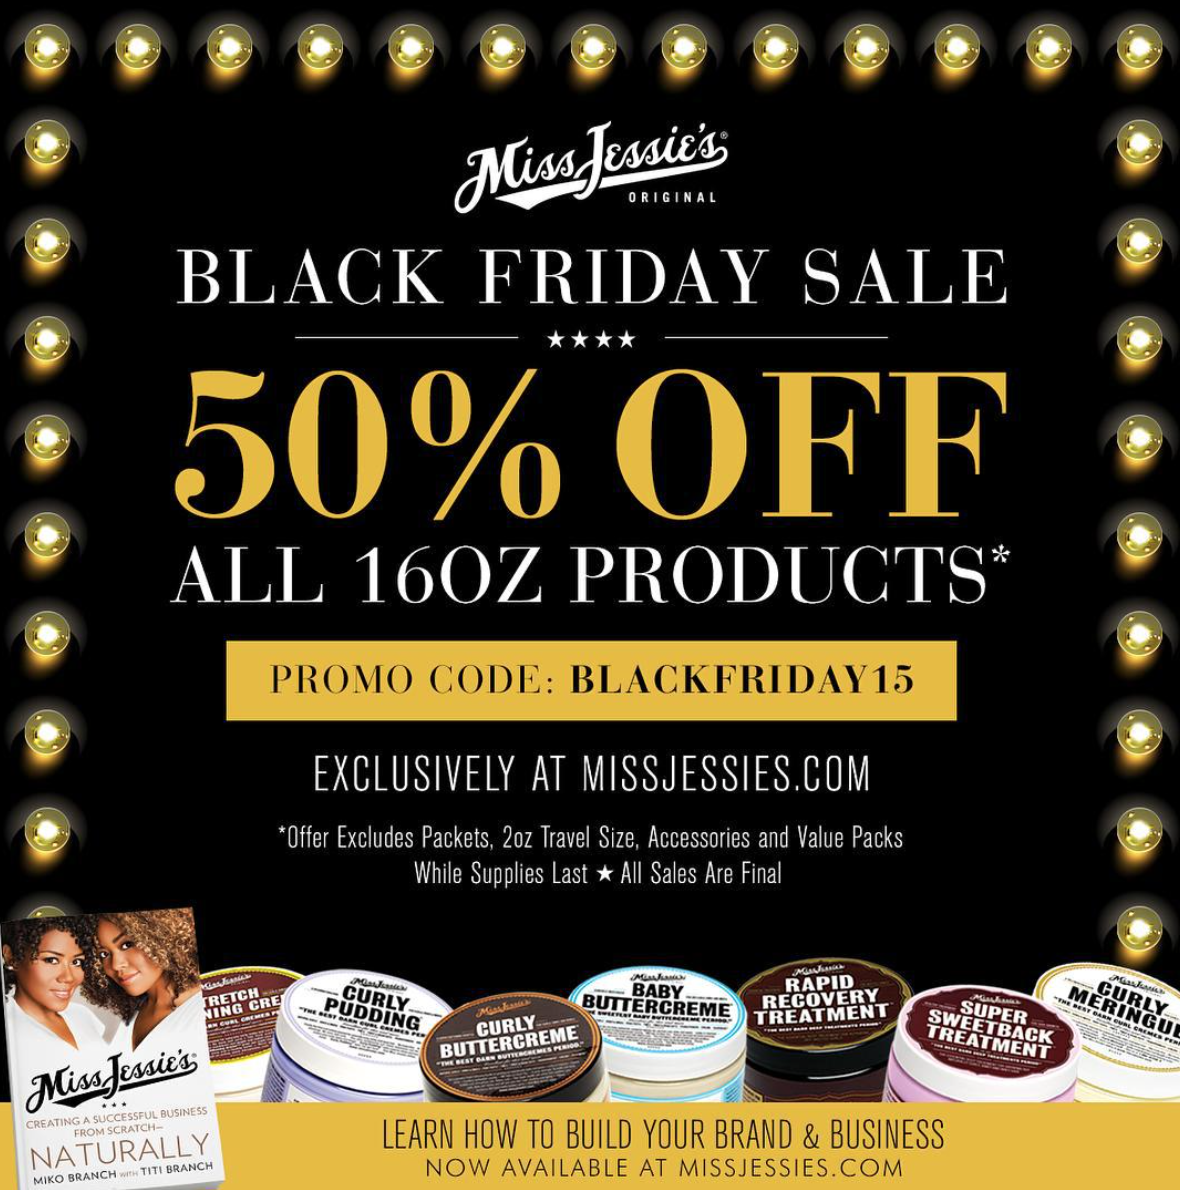 Alien Bees Black Friday Sale: ClassyCurlies.com: Your Source For Natural Hair And Beauty